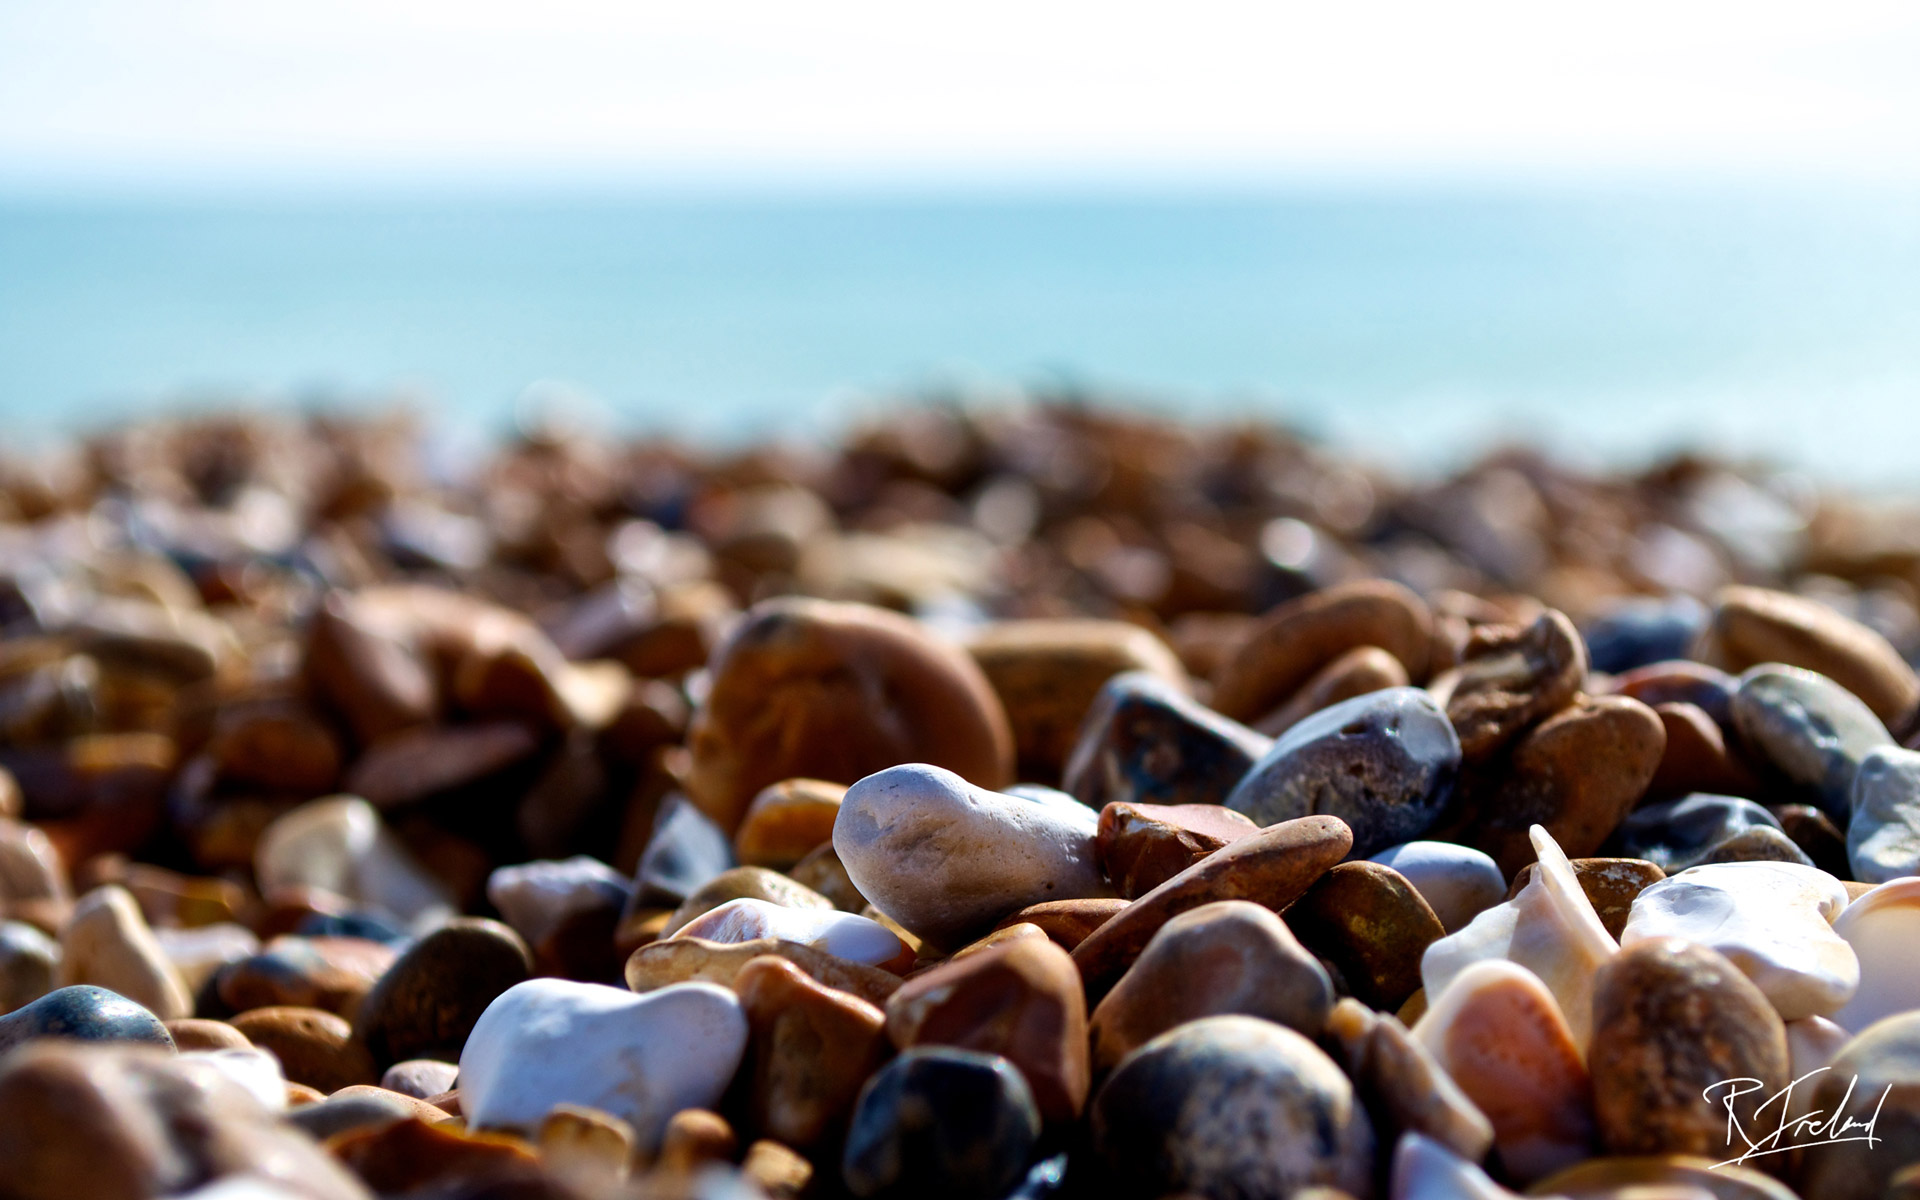 Wallpapers Of The Day: Stones | 1920x1200 Stones Images